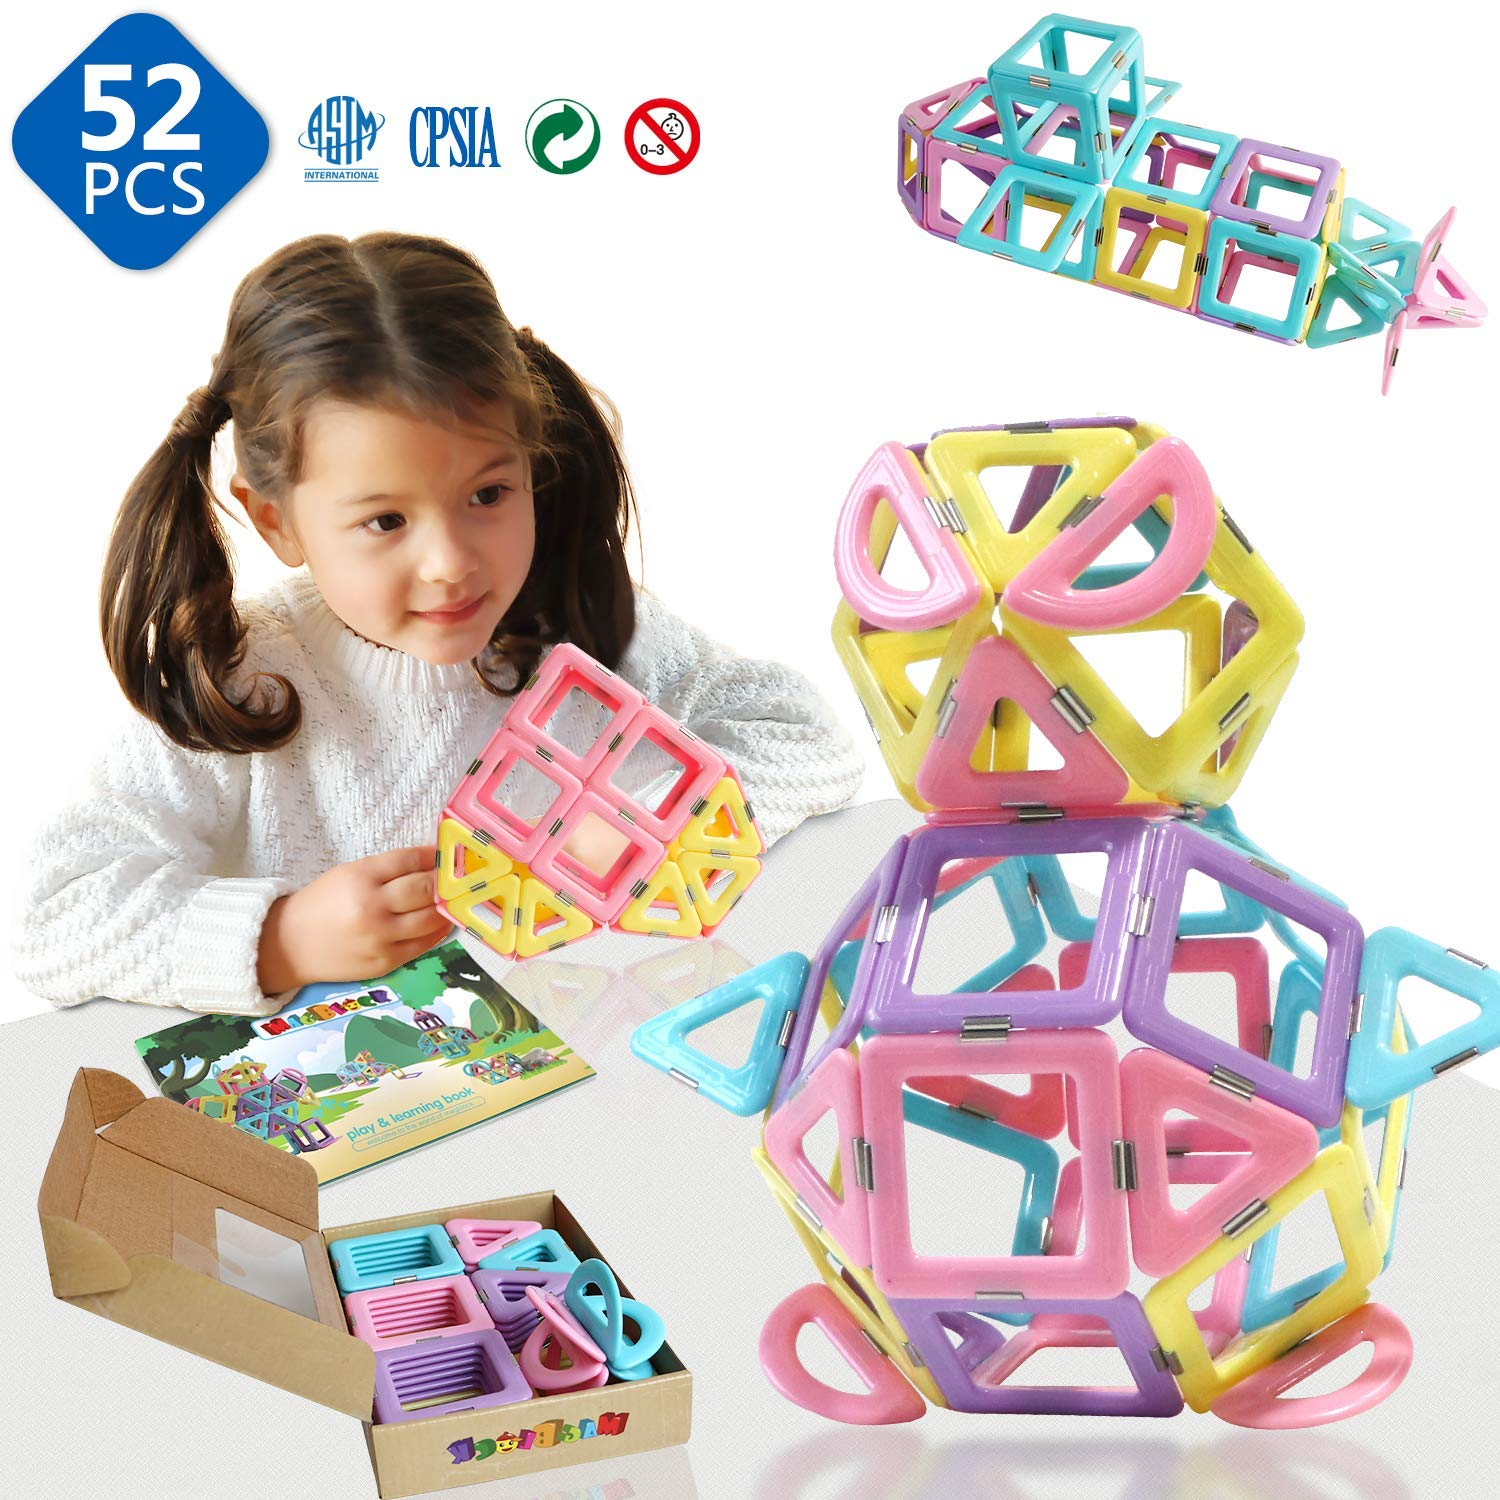 Magnetic Tiles - 3D Magnetic Toys 52 Pieces Set for Toddlers Boys Girls Gift Magnetic Building Blocks Tiles with Candy Color Toys by Magblock